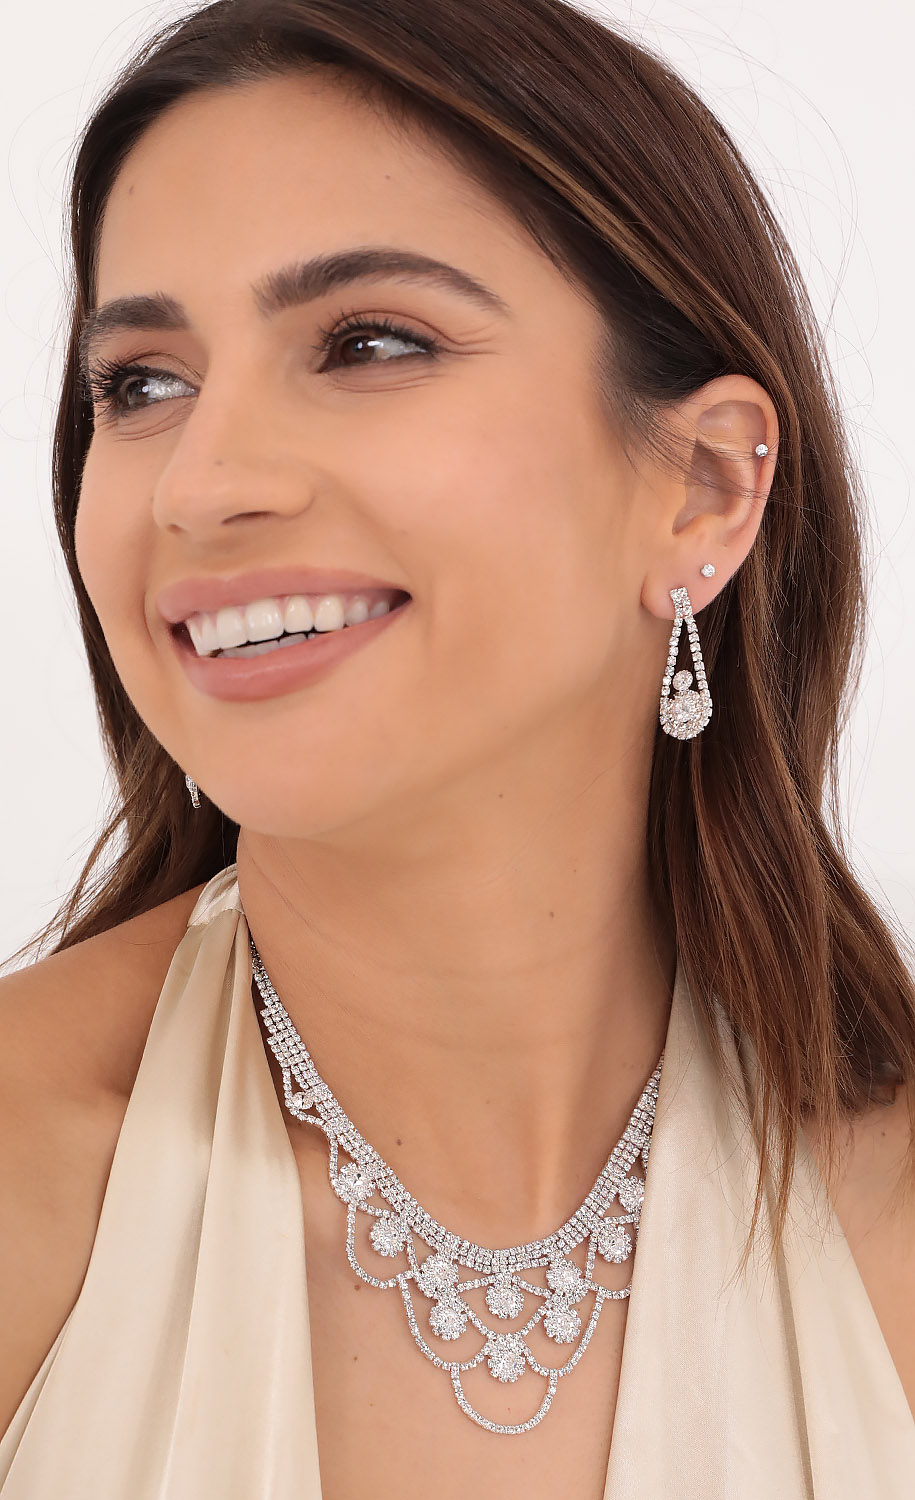 Homecoming Queen Crystal necklace Set in Silver